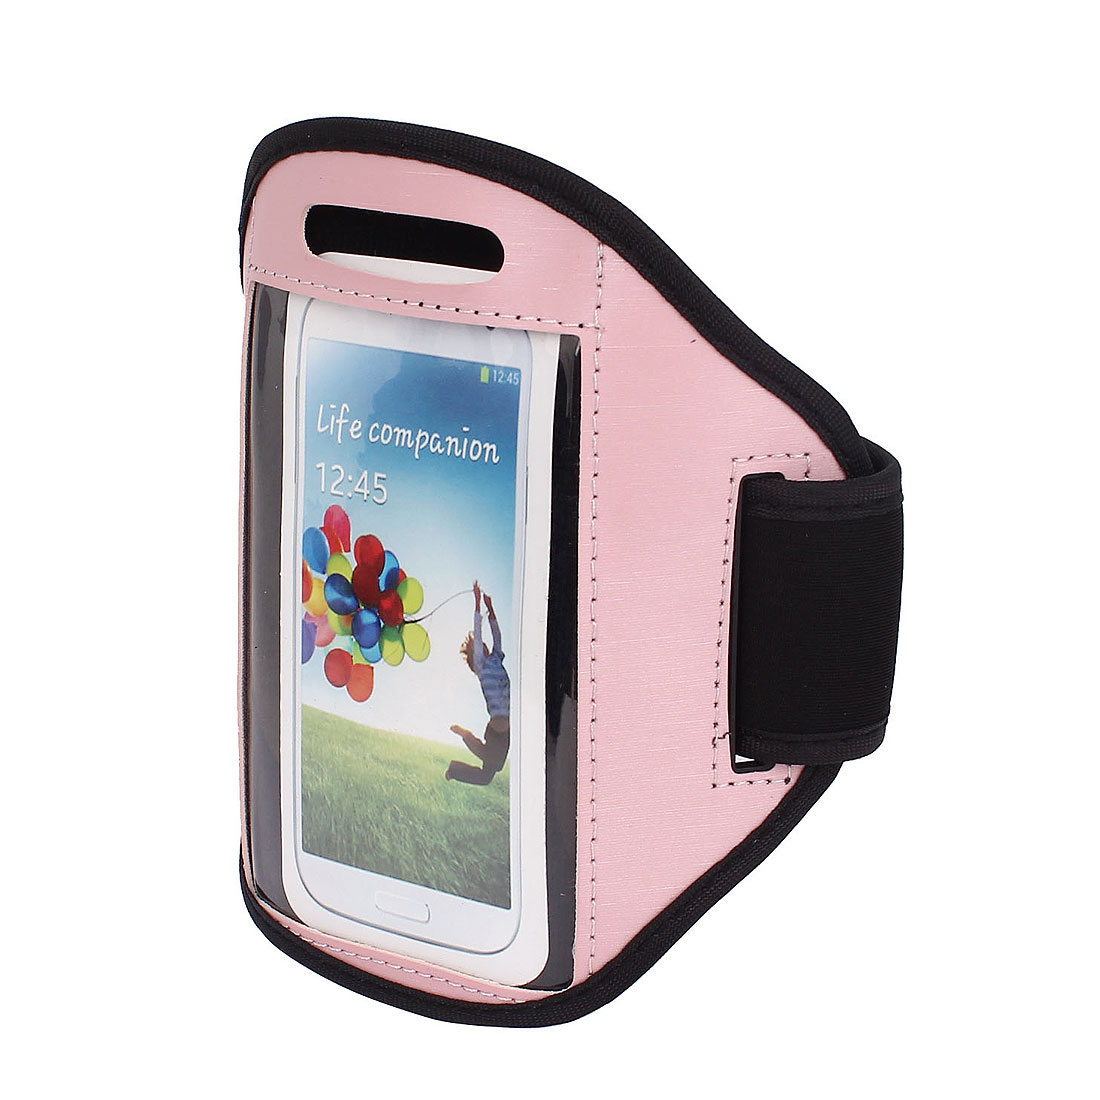 Outdoor Jogging Running Sports Armband Case Cover Pink for S3 S4 i9300 i9500